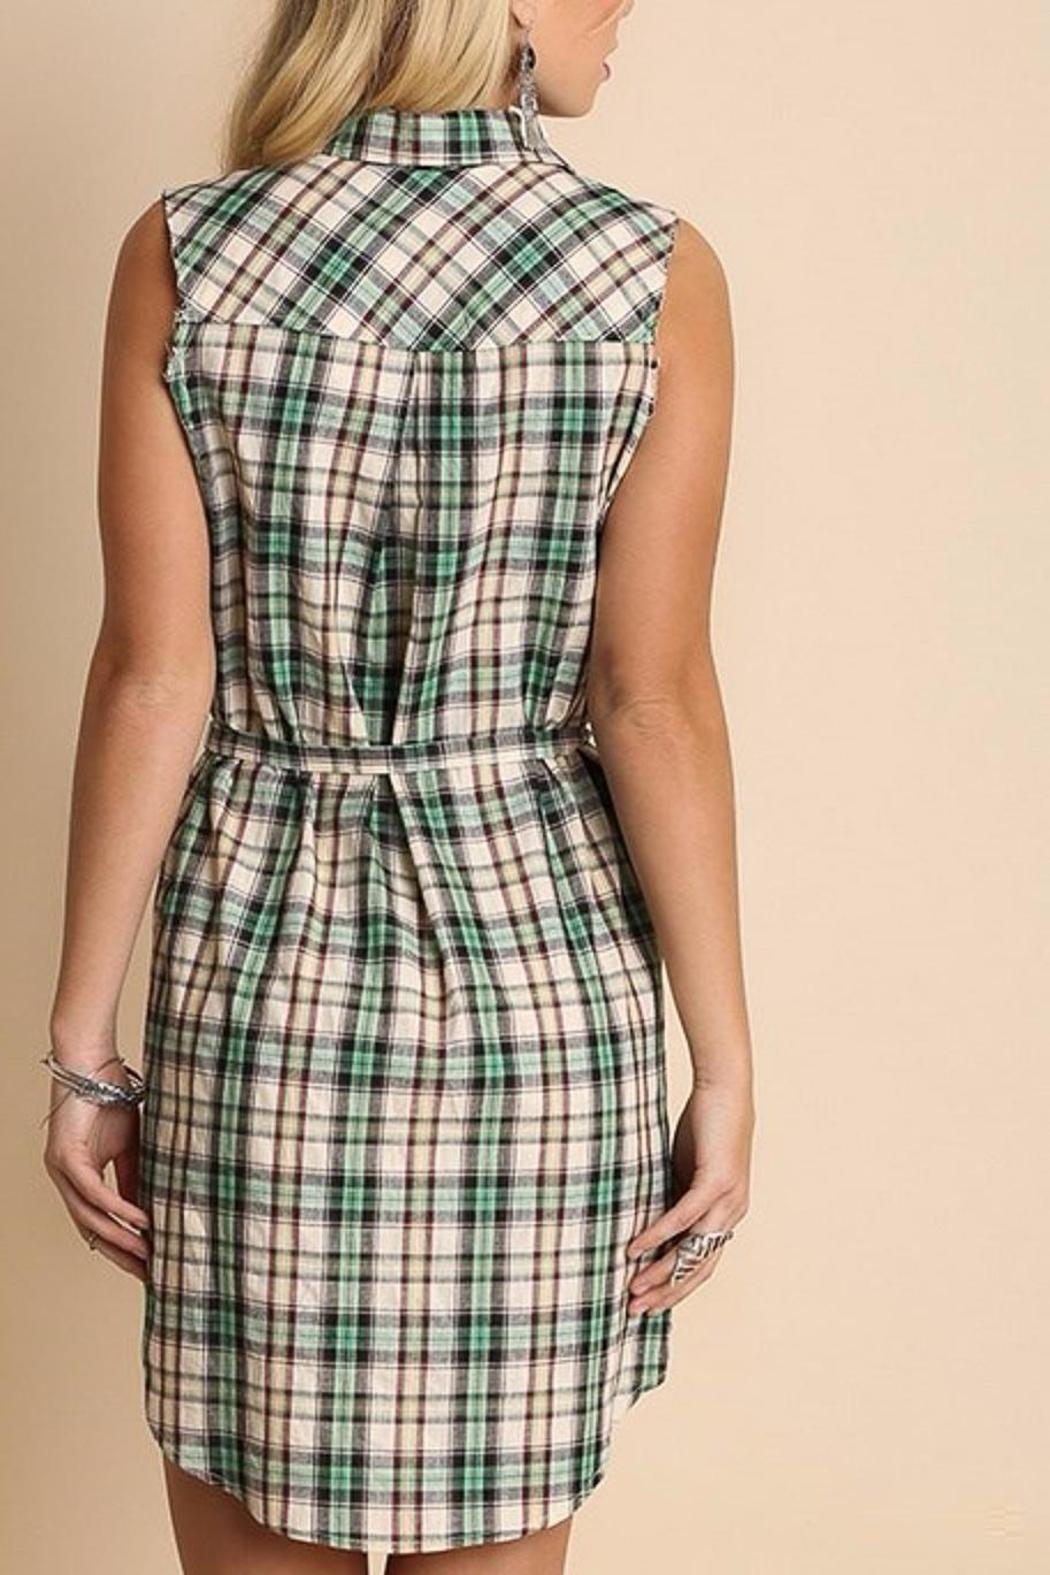 People Outfitter Anytime Plaid Dress - Front Full Image